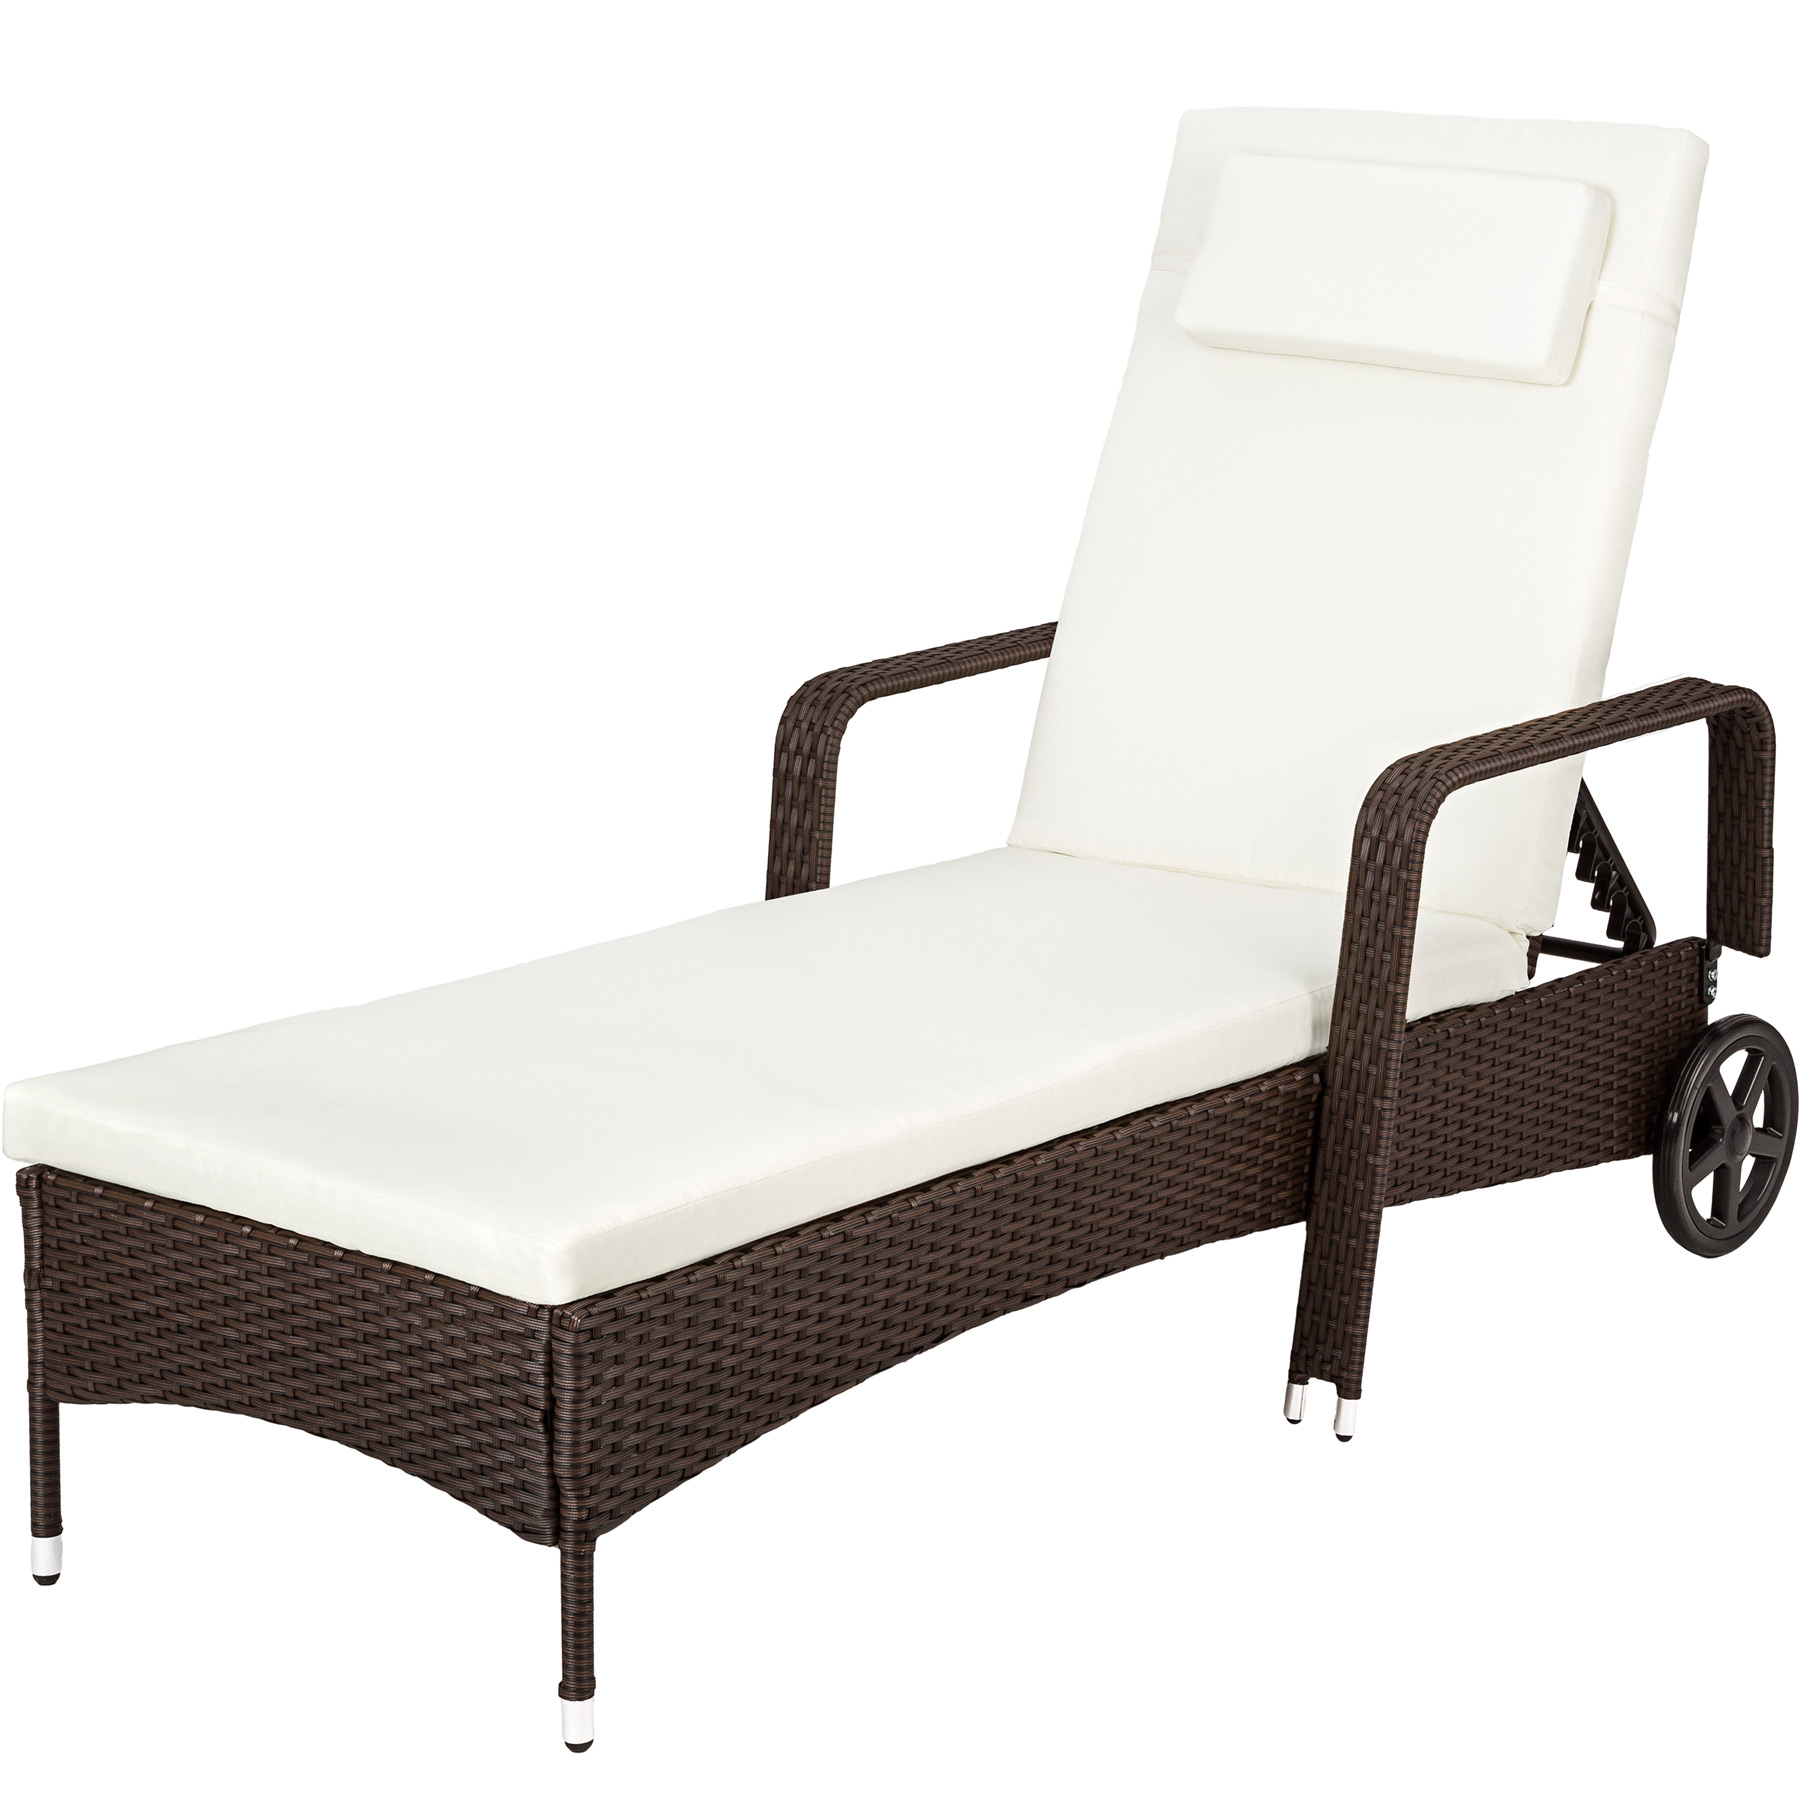 rattan day bed sun canopy lounger recliner garden patio. Black Bedroom Furniture Sets. Home Design Ideas